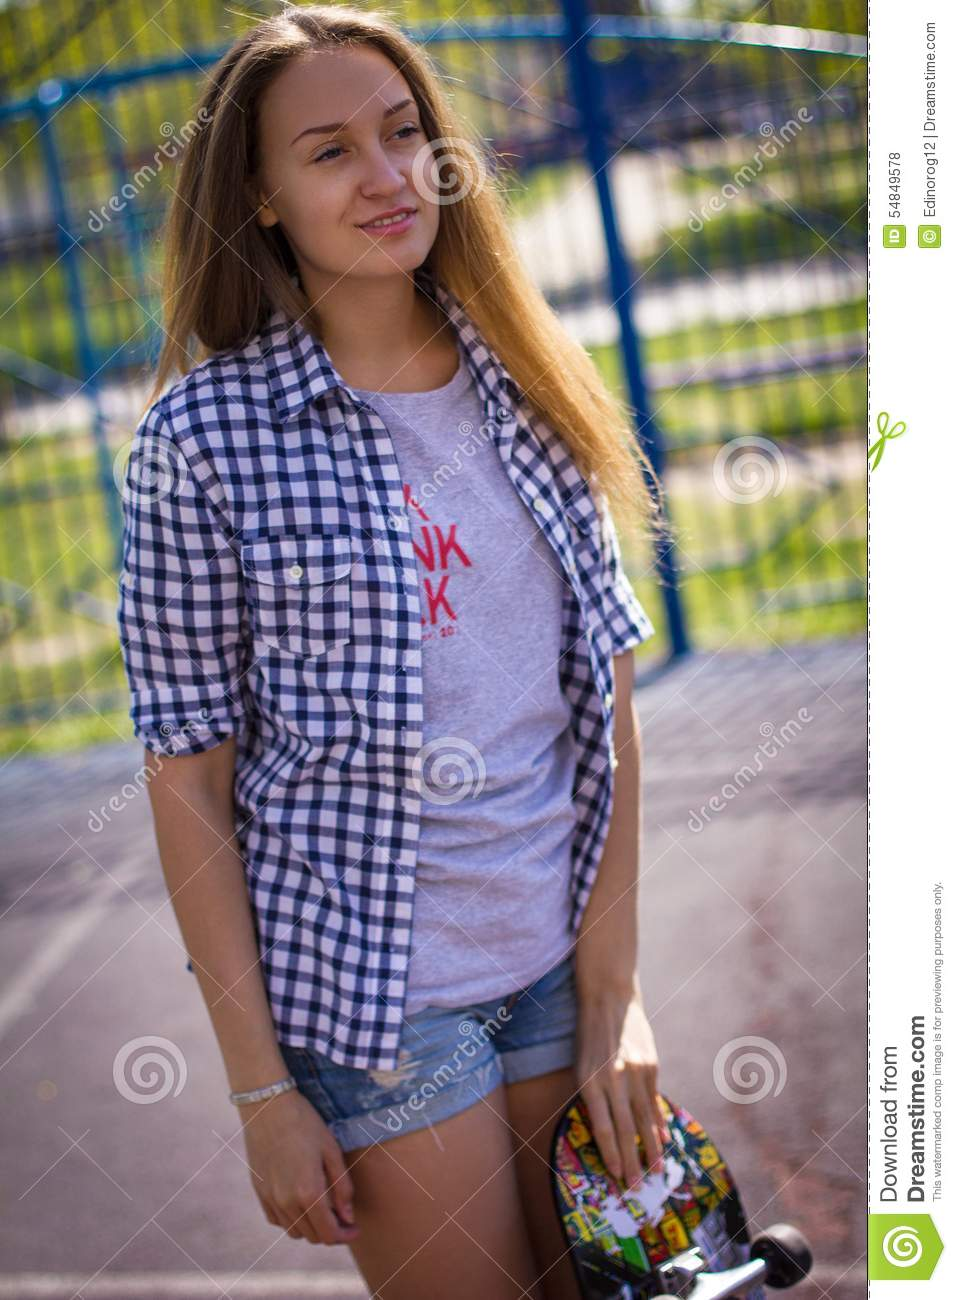 Cute Girl In Shorts With A Skateboard On The Playground Stock ...